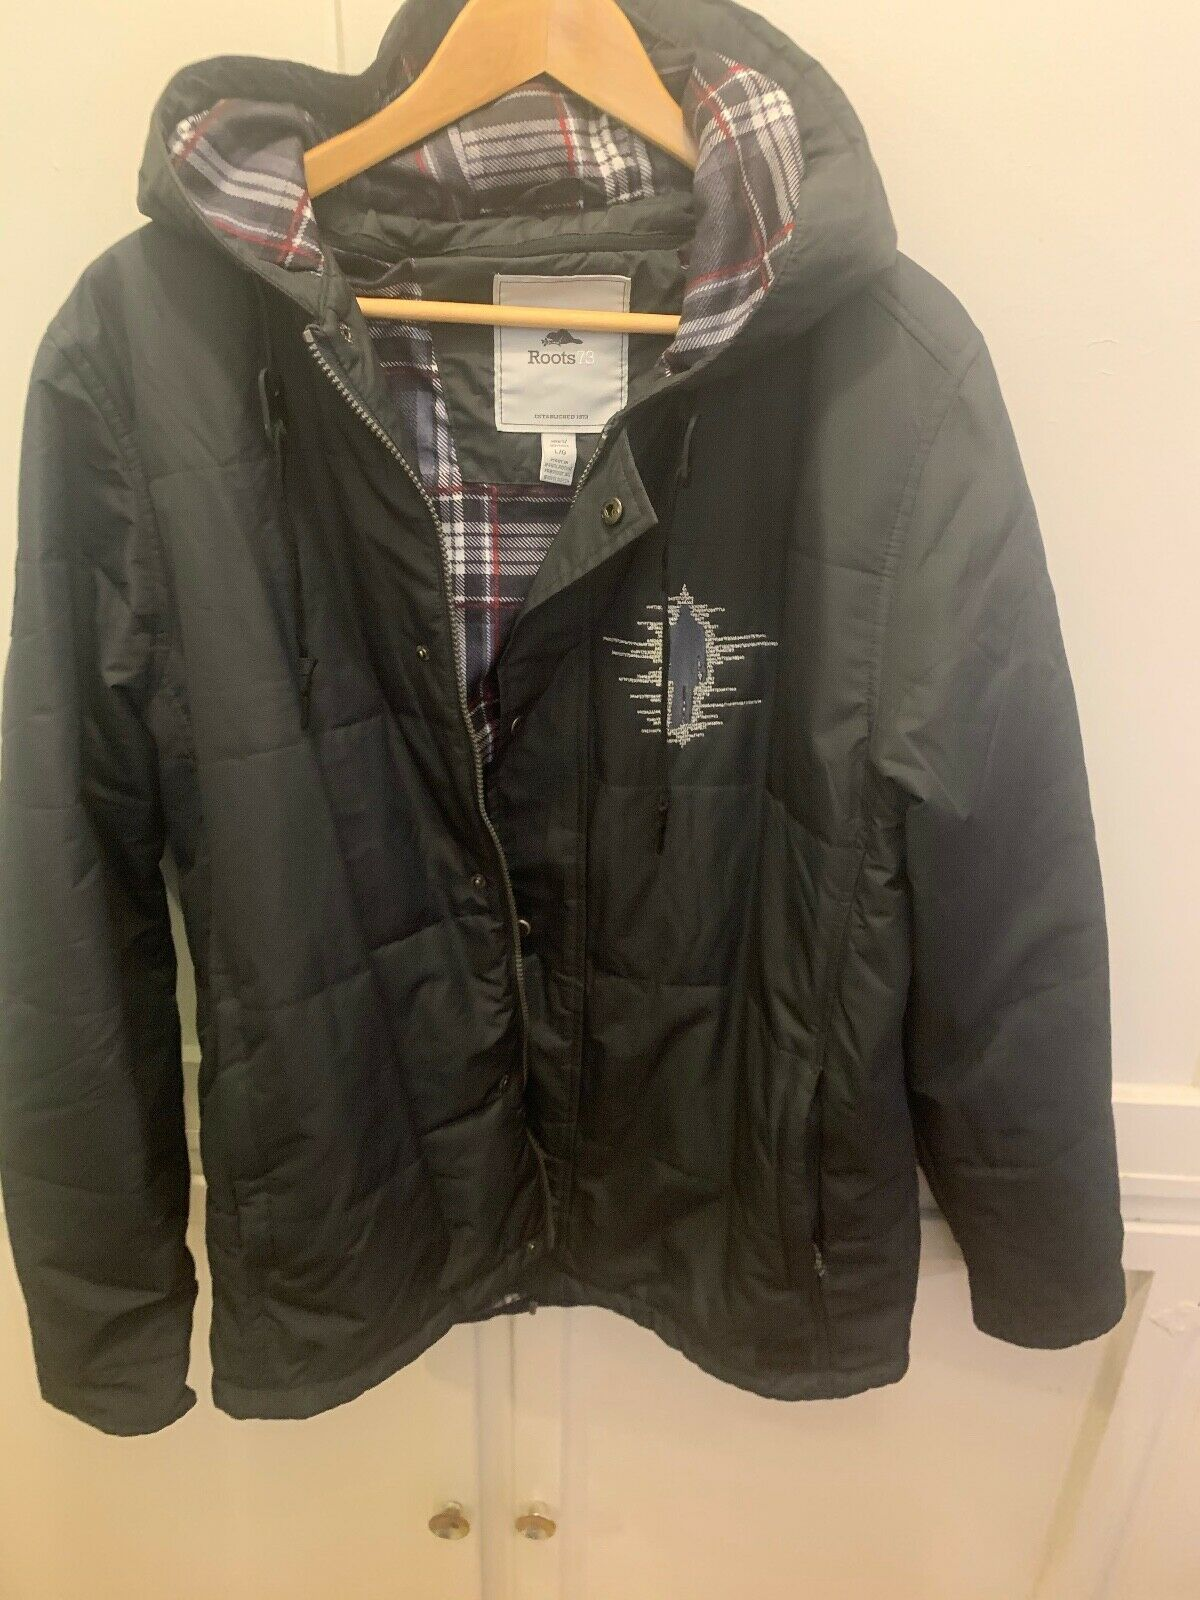 ROOTS 73 TV SHOW PERSON IF INTEREST CREW HOODED COAT MENS L GRAY PLAID LINING - $59.99